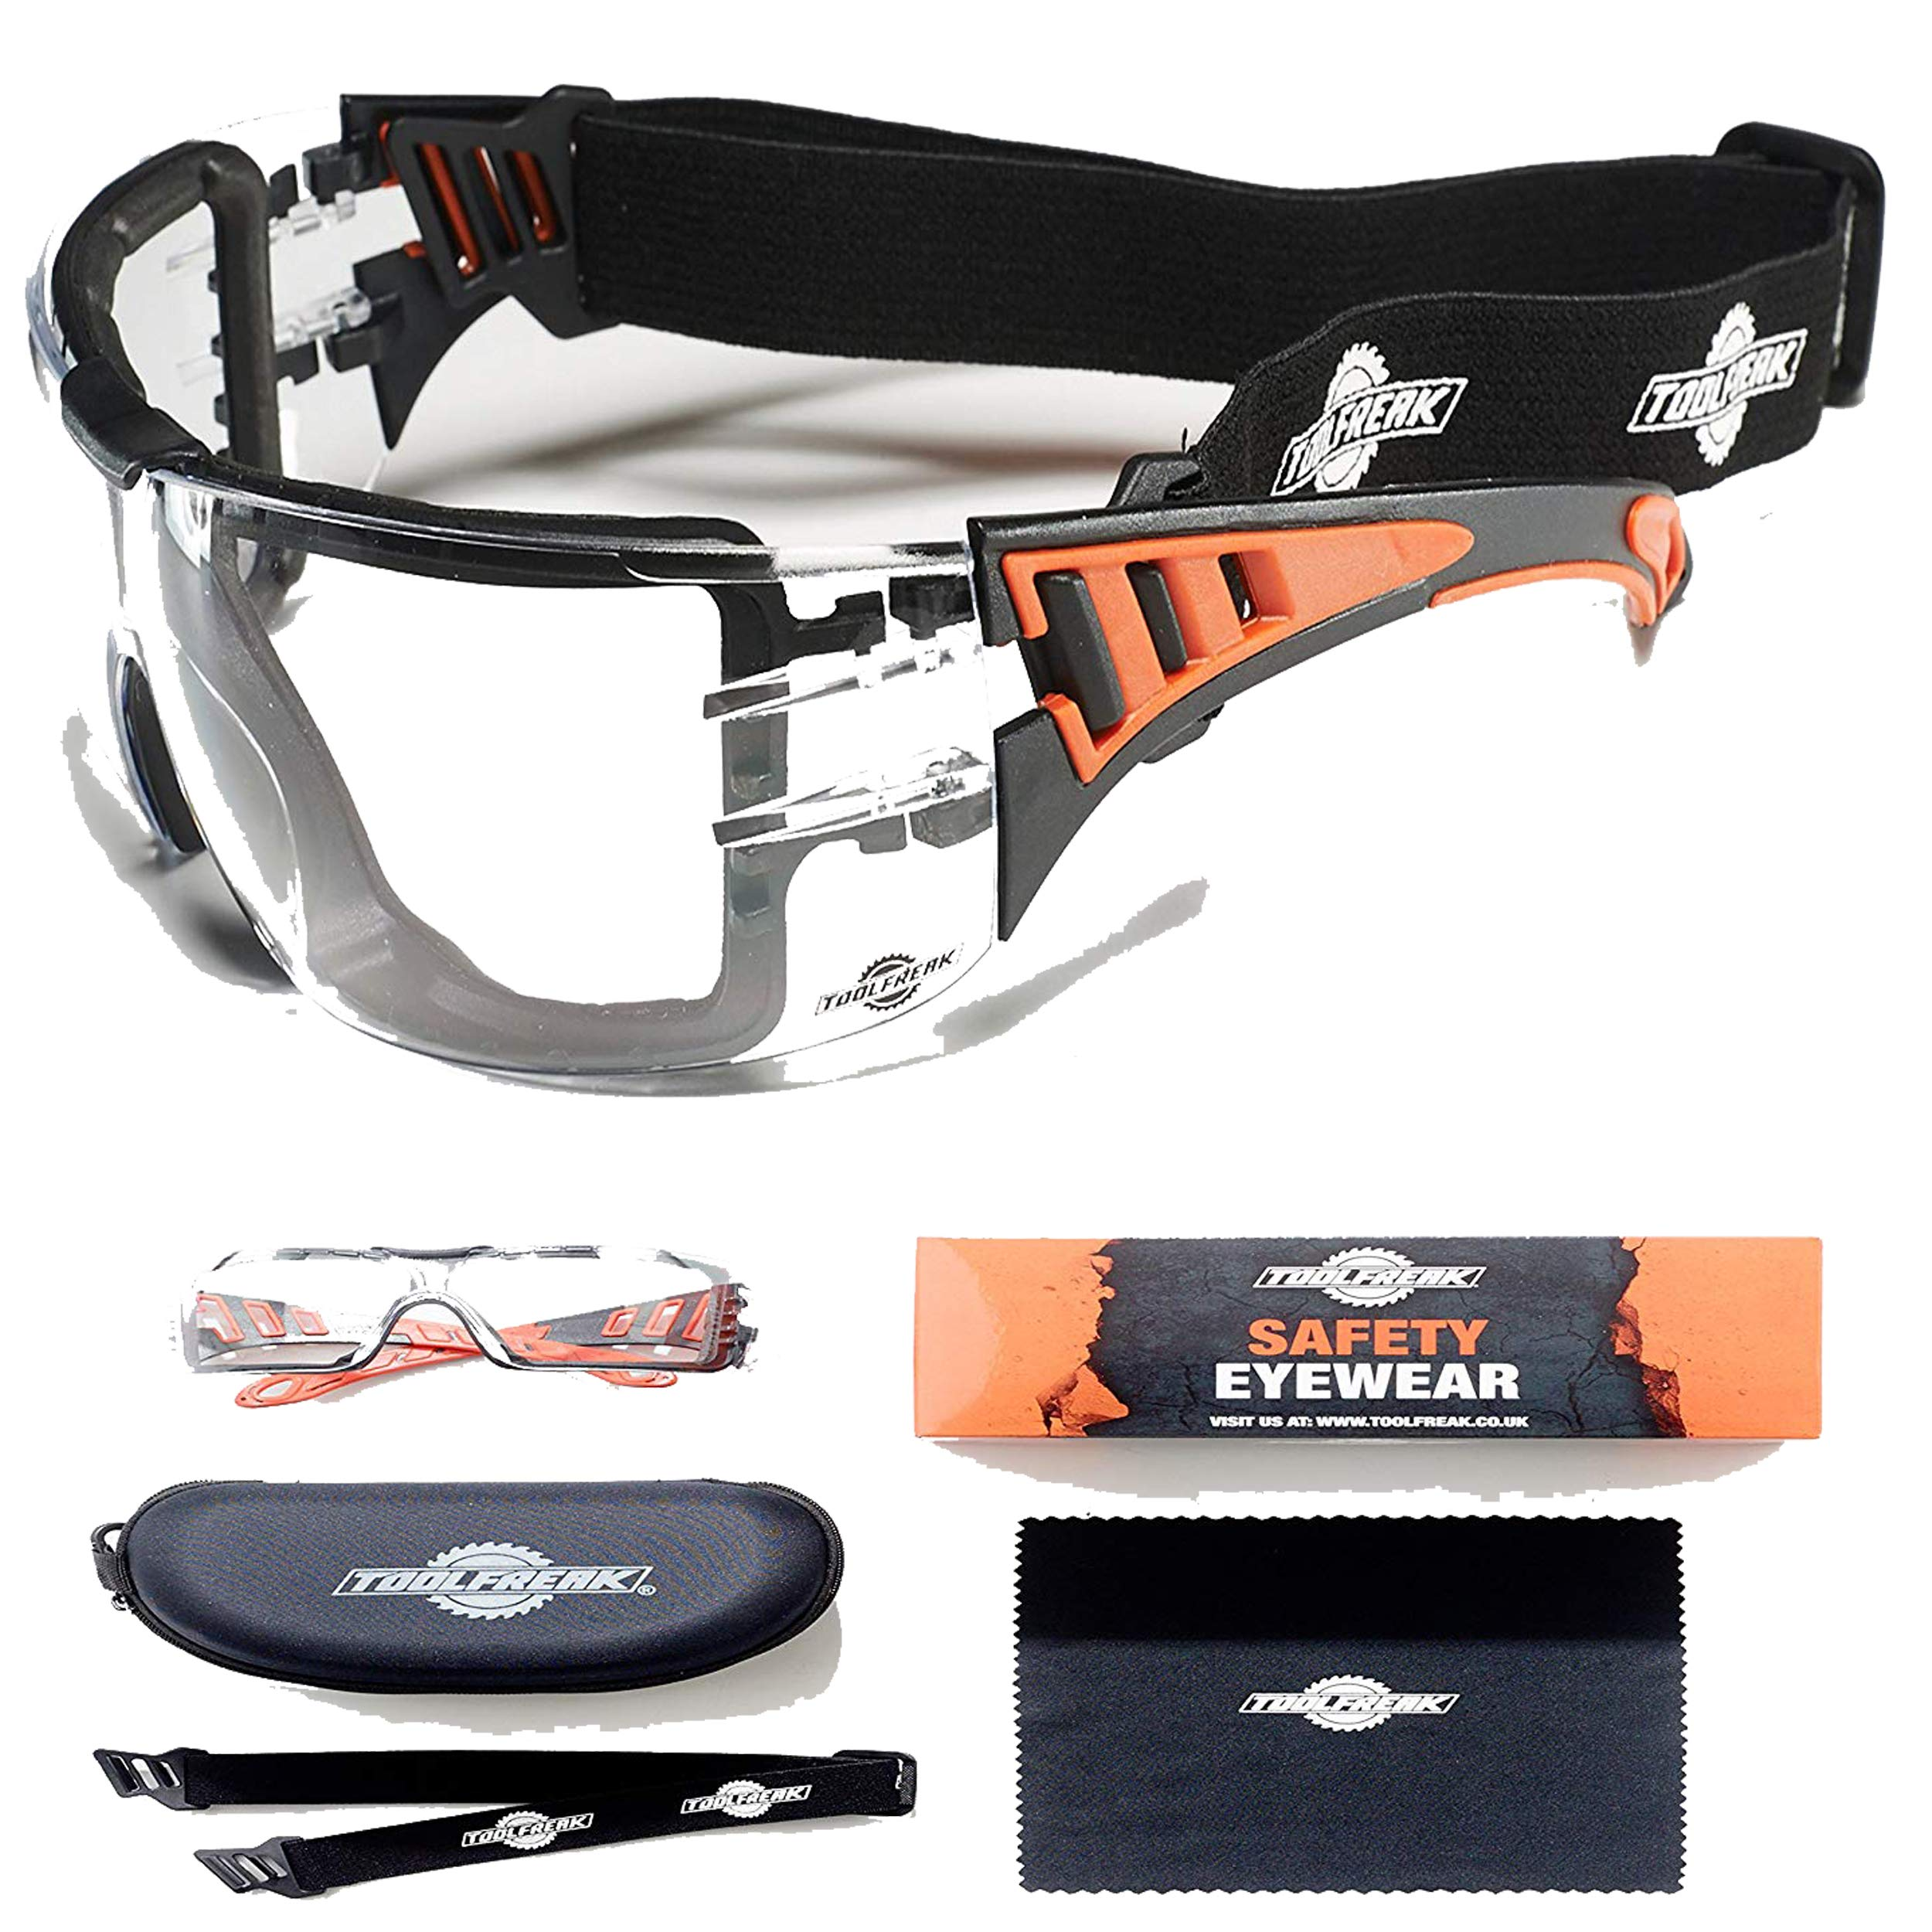 ToolFreak-Safety Glasses with Foam Padding | Protective Eyewear with Improved Vision For Men & Women | Treated to Help Reduce Fog and Scratch | Maximum UV Protection | Hard Case & Cloth (Clear Lens)